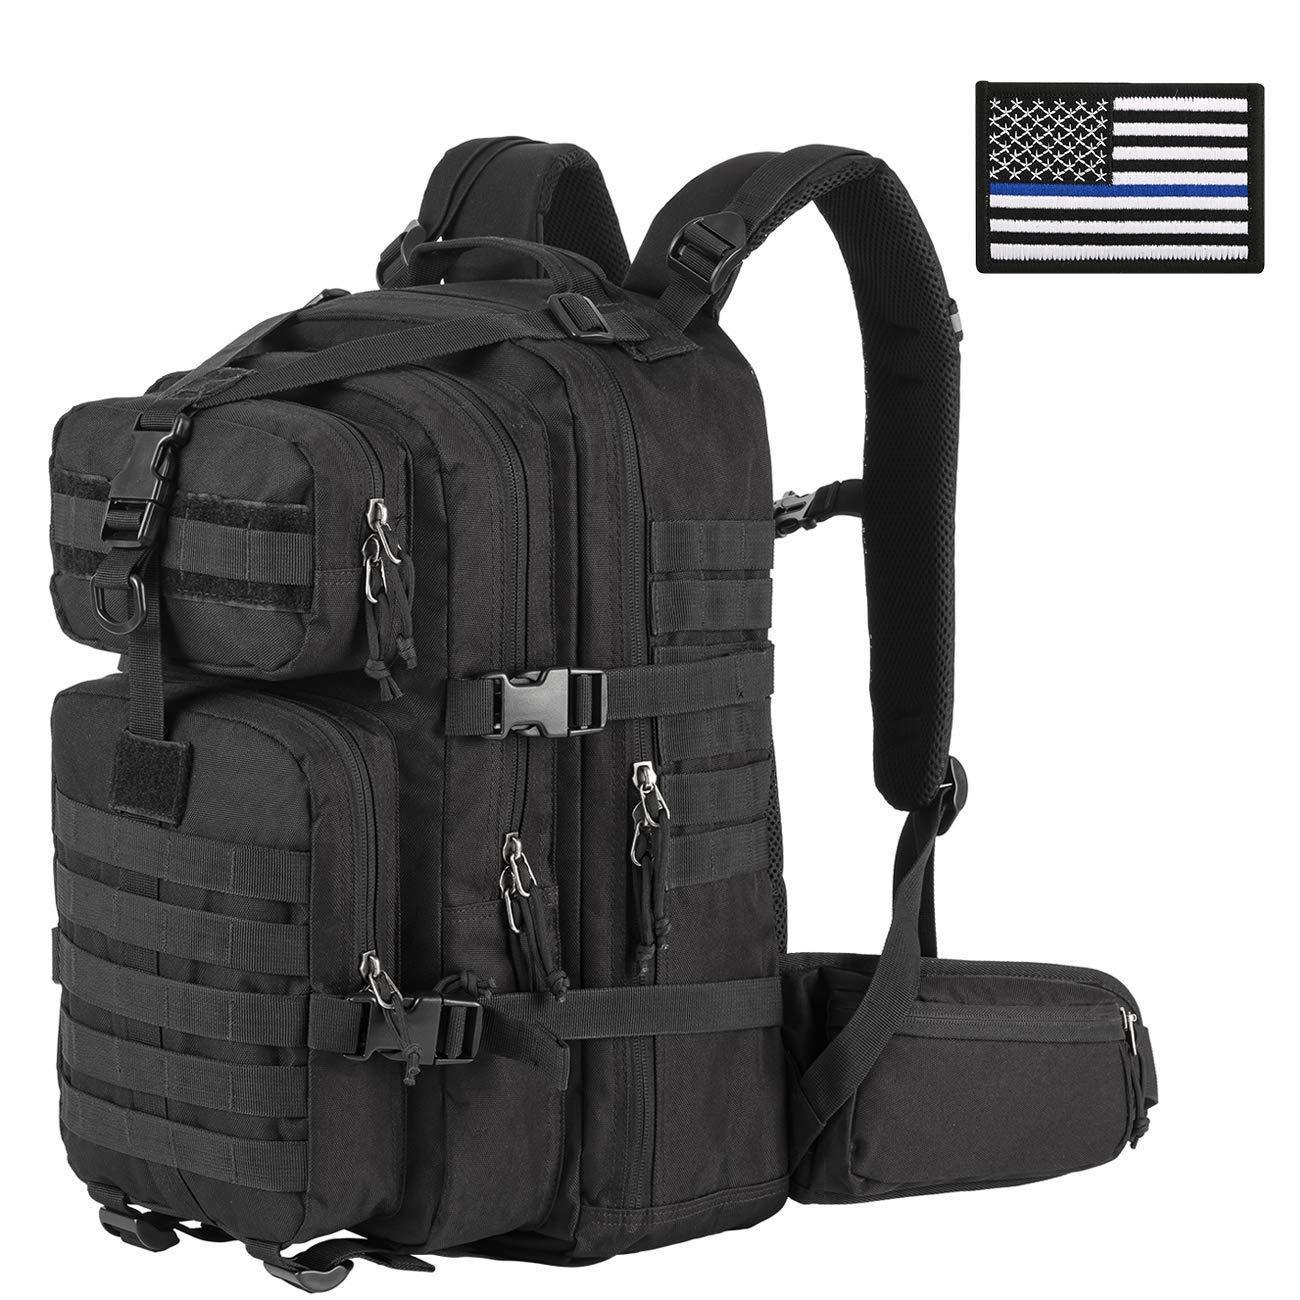 Military Tactical Backpack Small 3 Day Assault Pack Army Molle Bug Out...